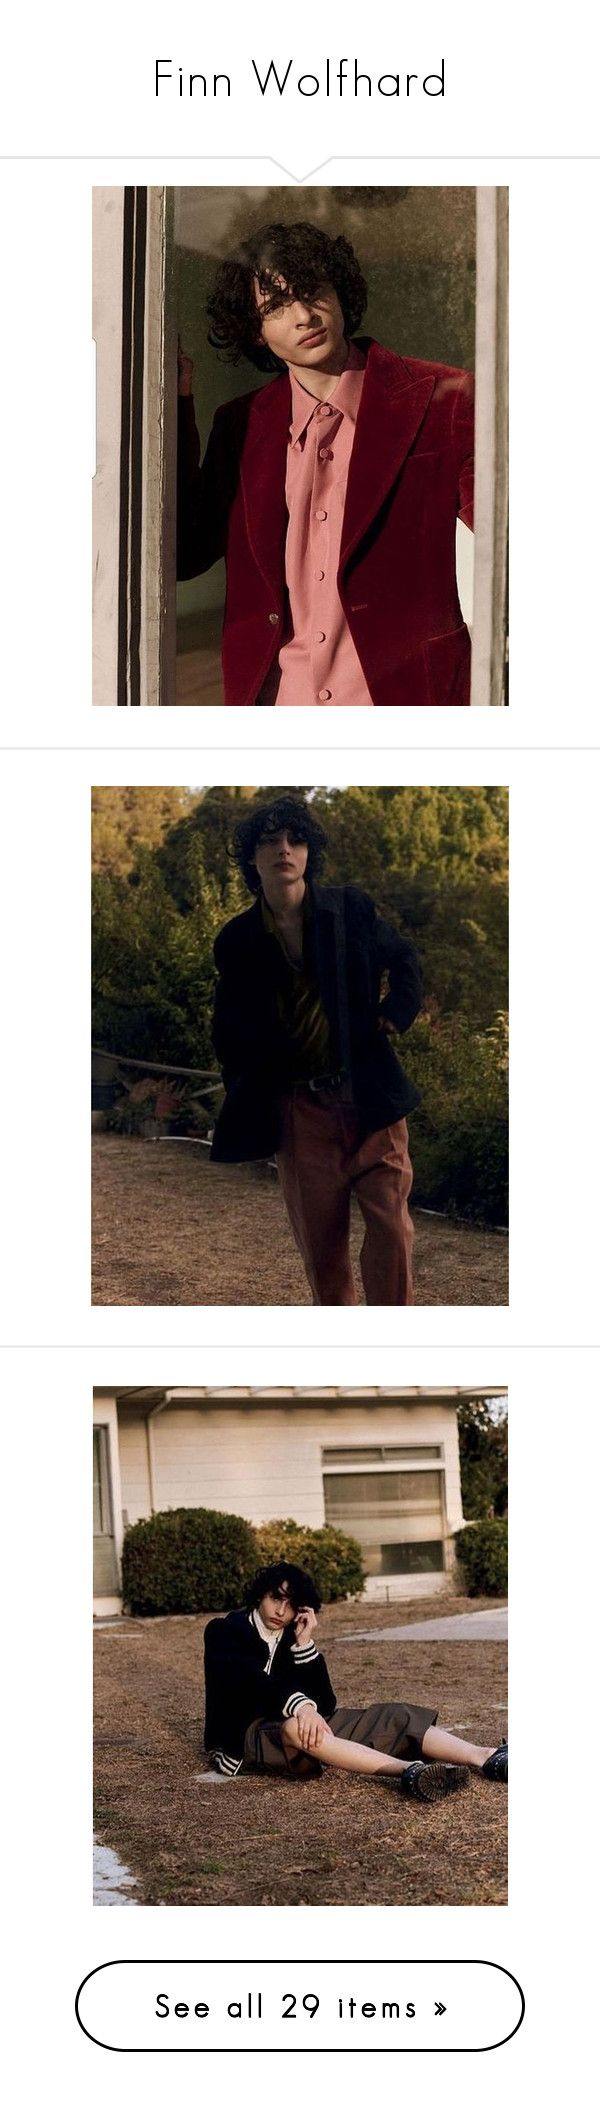 """Finn Wolfhard"" by strangthings ❤ liked on Polyvore featuring -photos"